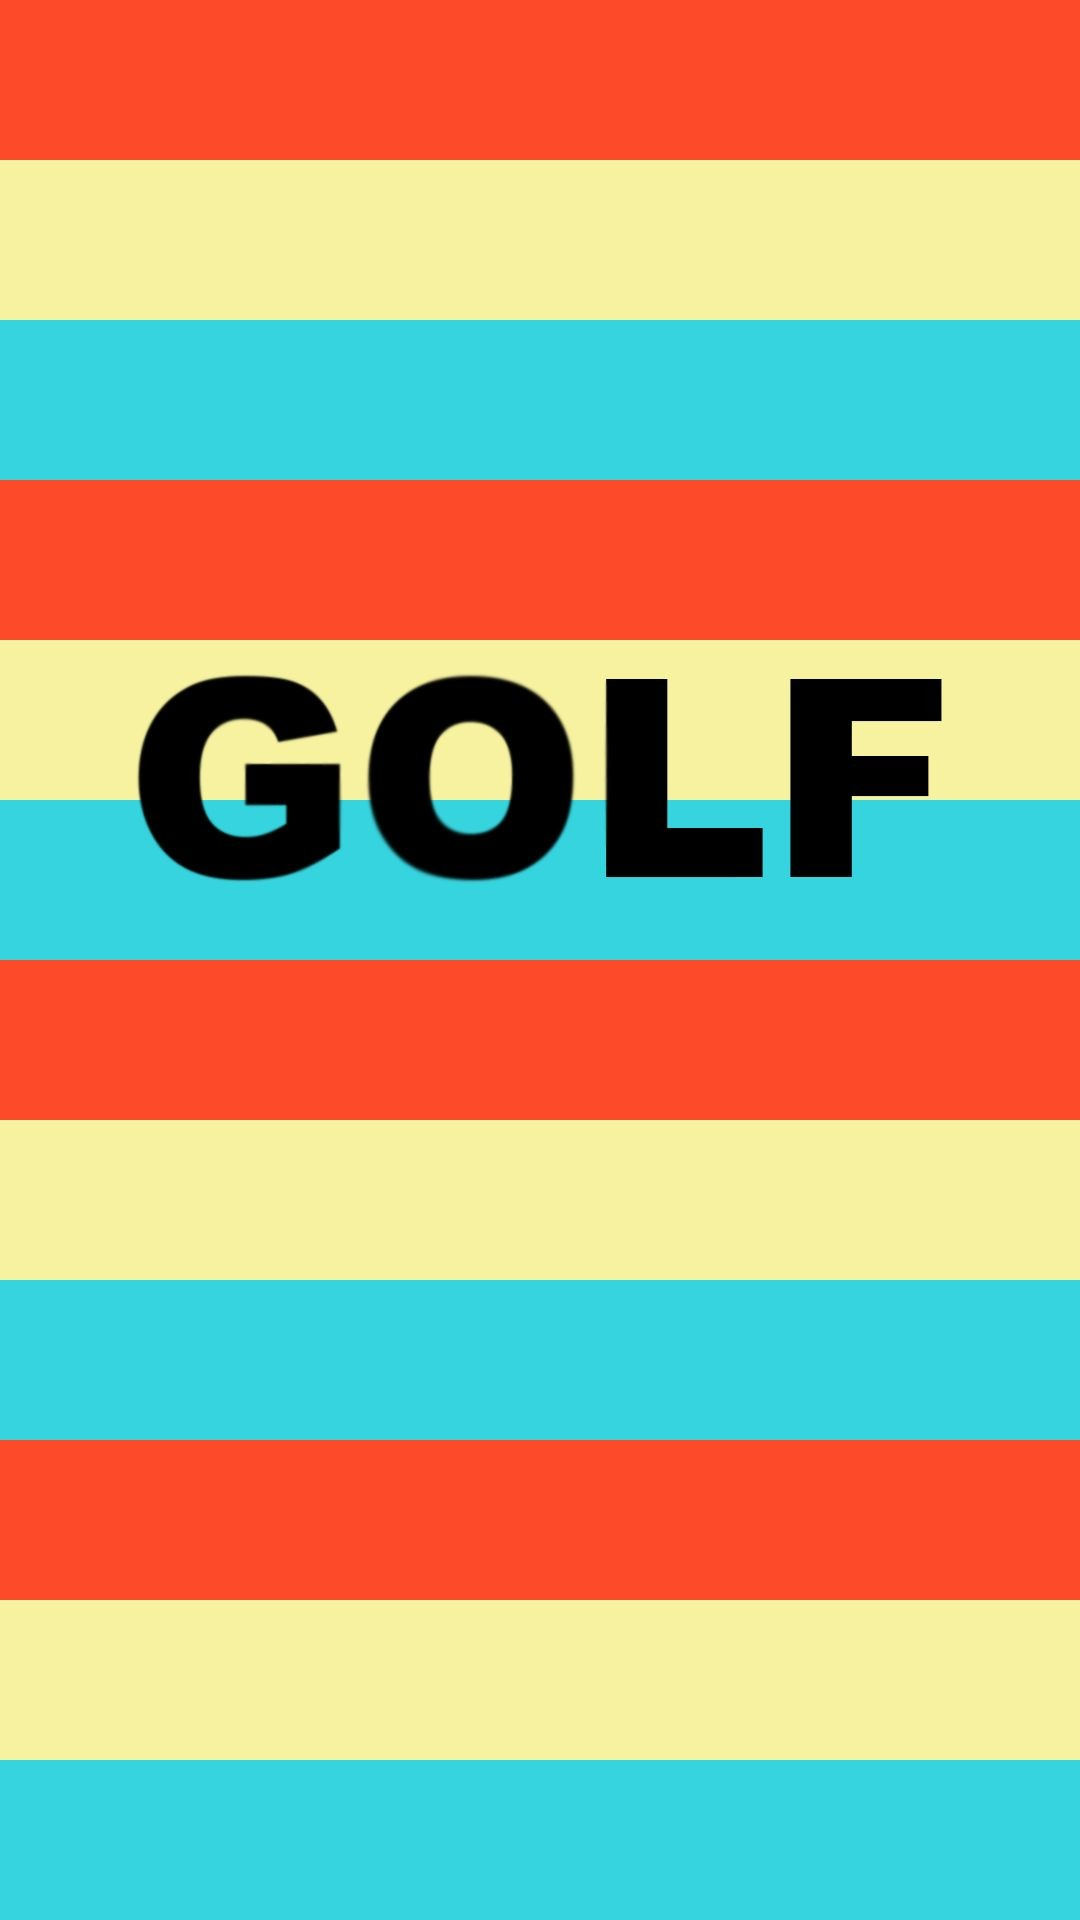 Res: 1080x1920, GOLF Striped Mobile Wallpaper () Need #iPhone #6S #Plus #Wallpaper